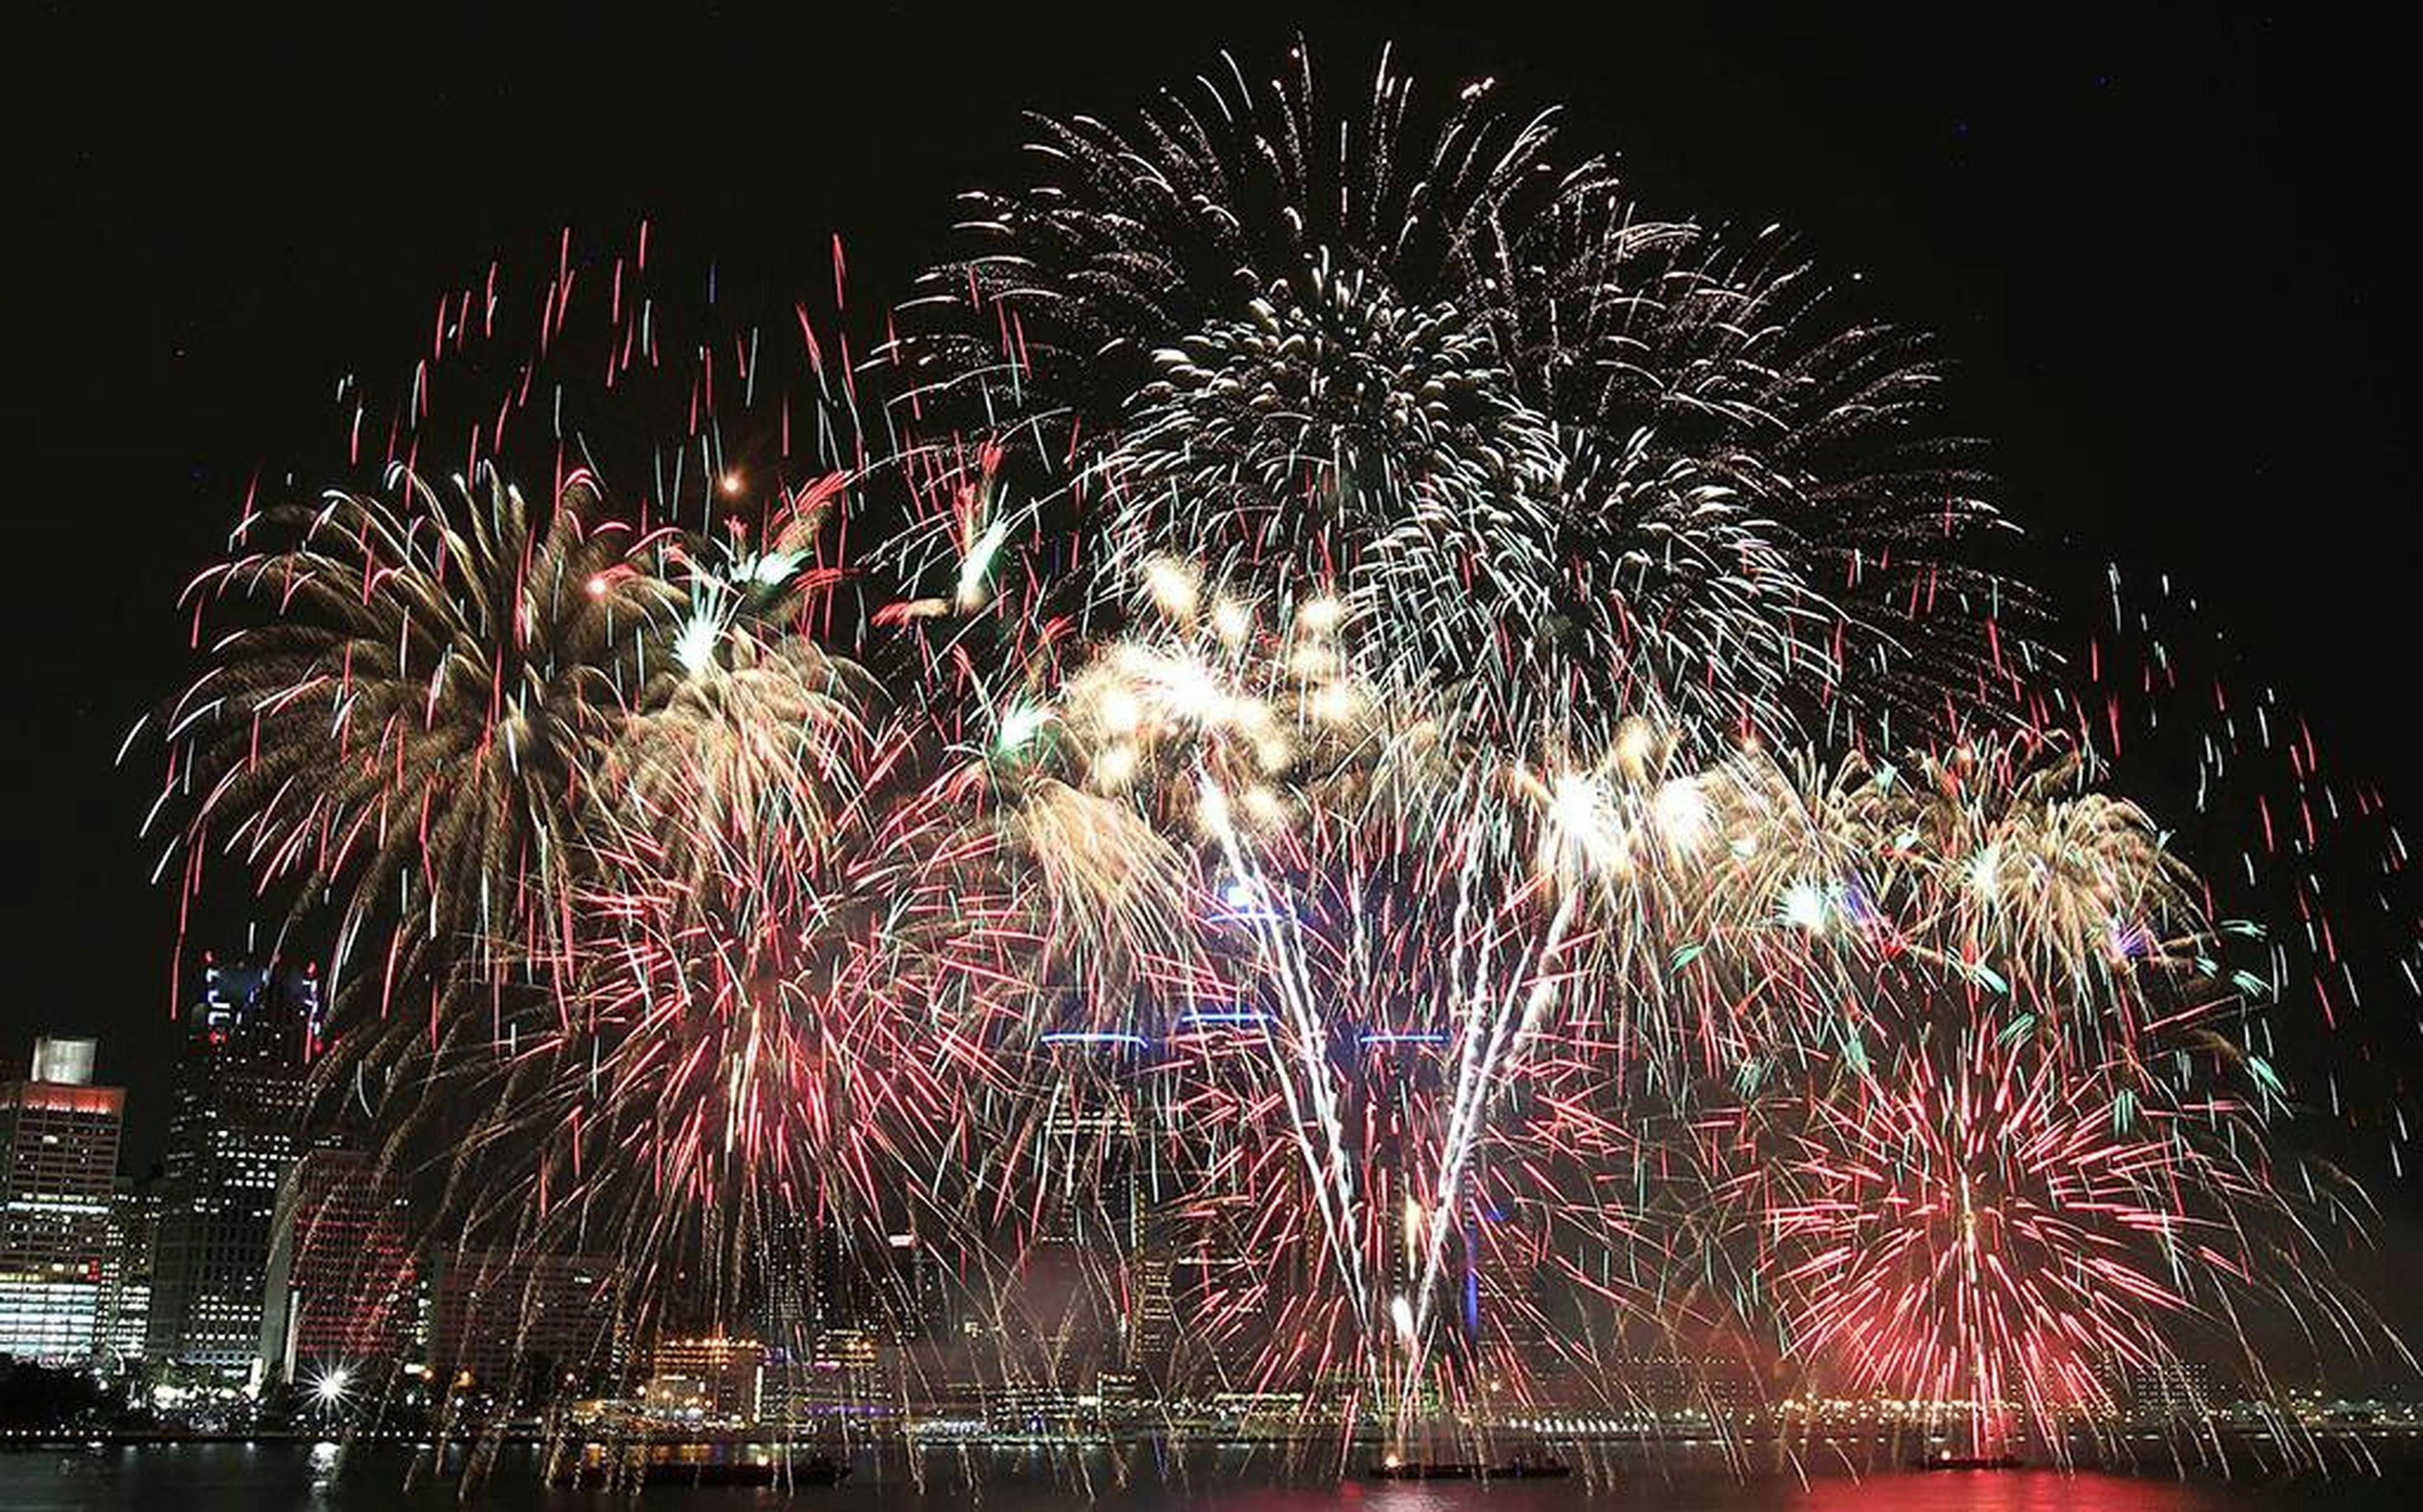 night, illuminated, firework display, celebration, exploding, long exposure, firework - man made object, motion, glowing, arts culture and entertainment, sparks, event, firework, entertainment, blurred motion, multi colored, sky, low angle view, celebration event, fire - natural phenomenon